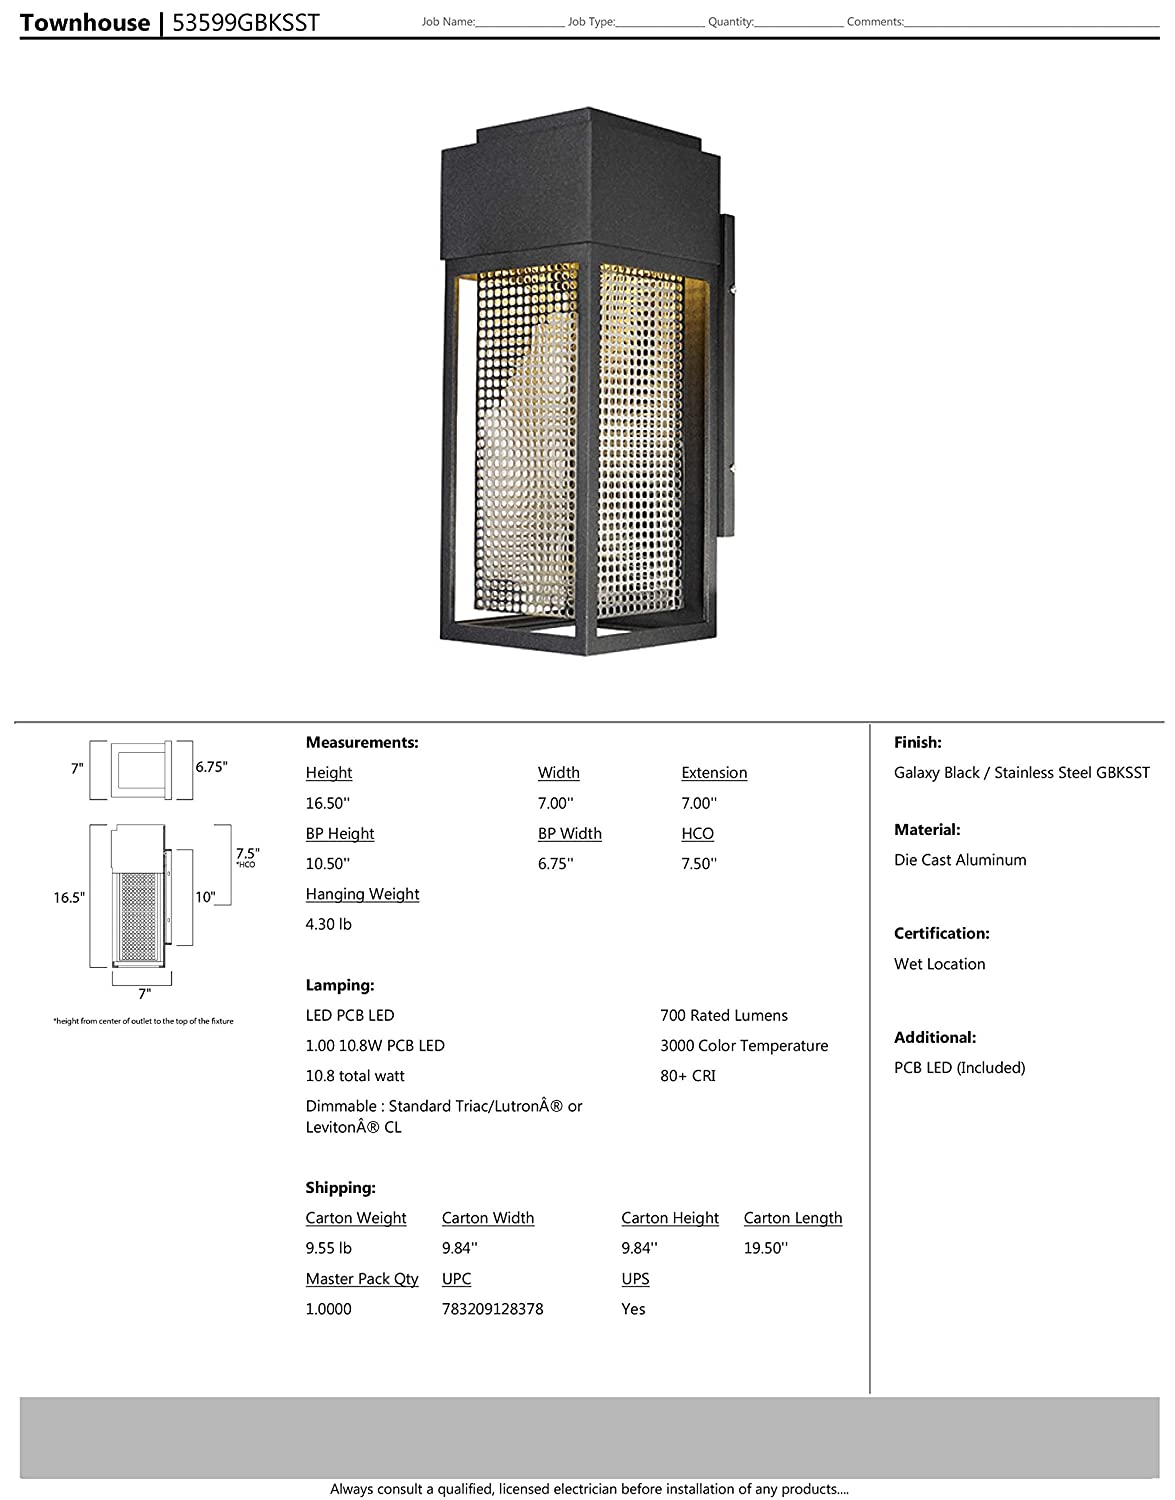 Galaxy Black // Stainless Steel Finish Damp Safety Rating Shade Material PCB LED Bulb Rated Lumens Maxim Lighting Glass Maxim 53599GBKSST Townhouse LED Outdoor Wall Sconce .16W Max.